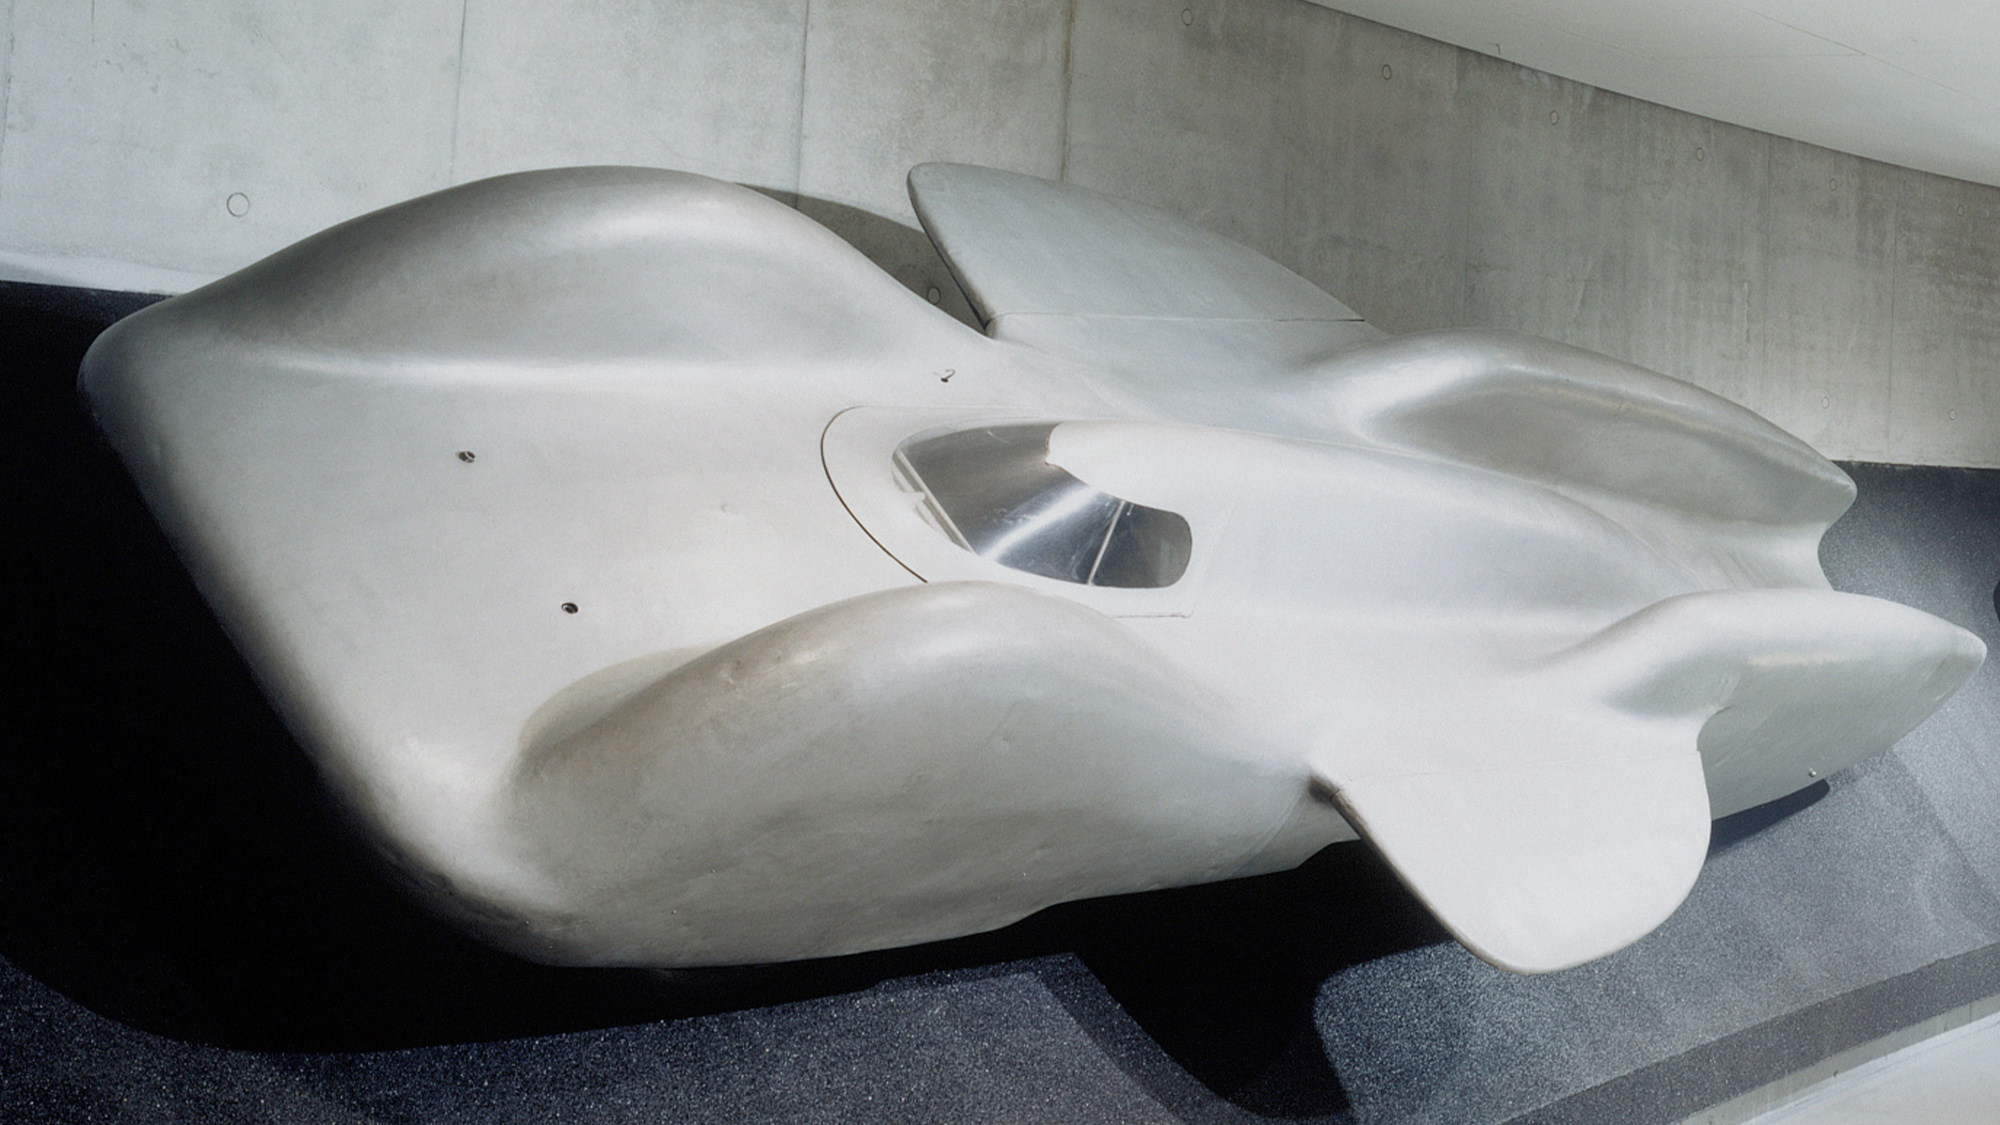 The fatal flaw in mythical Mercedes T 80 land speed record car